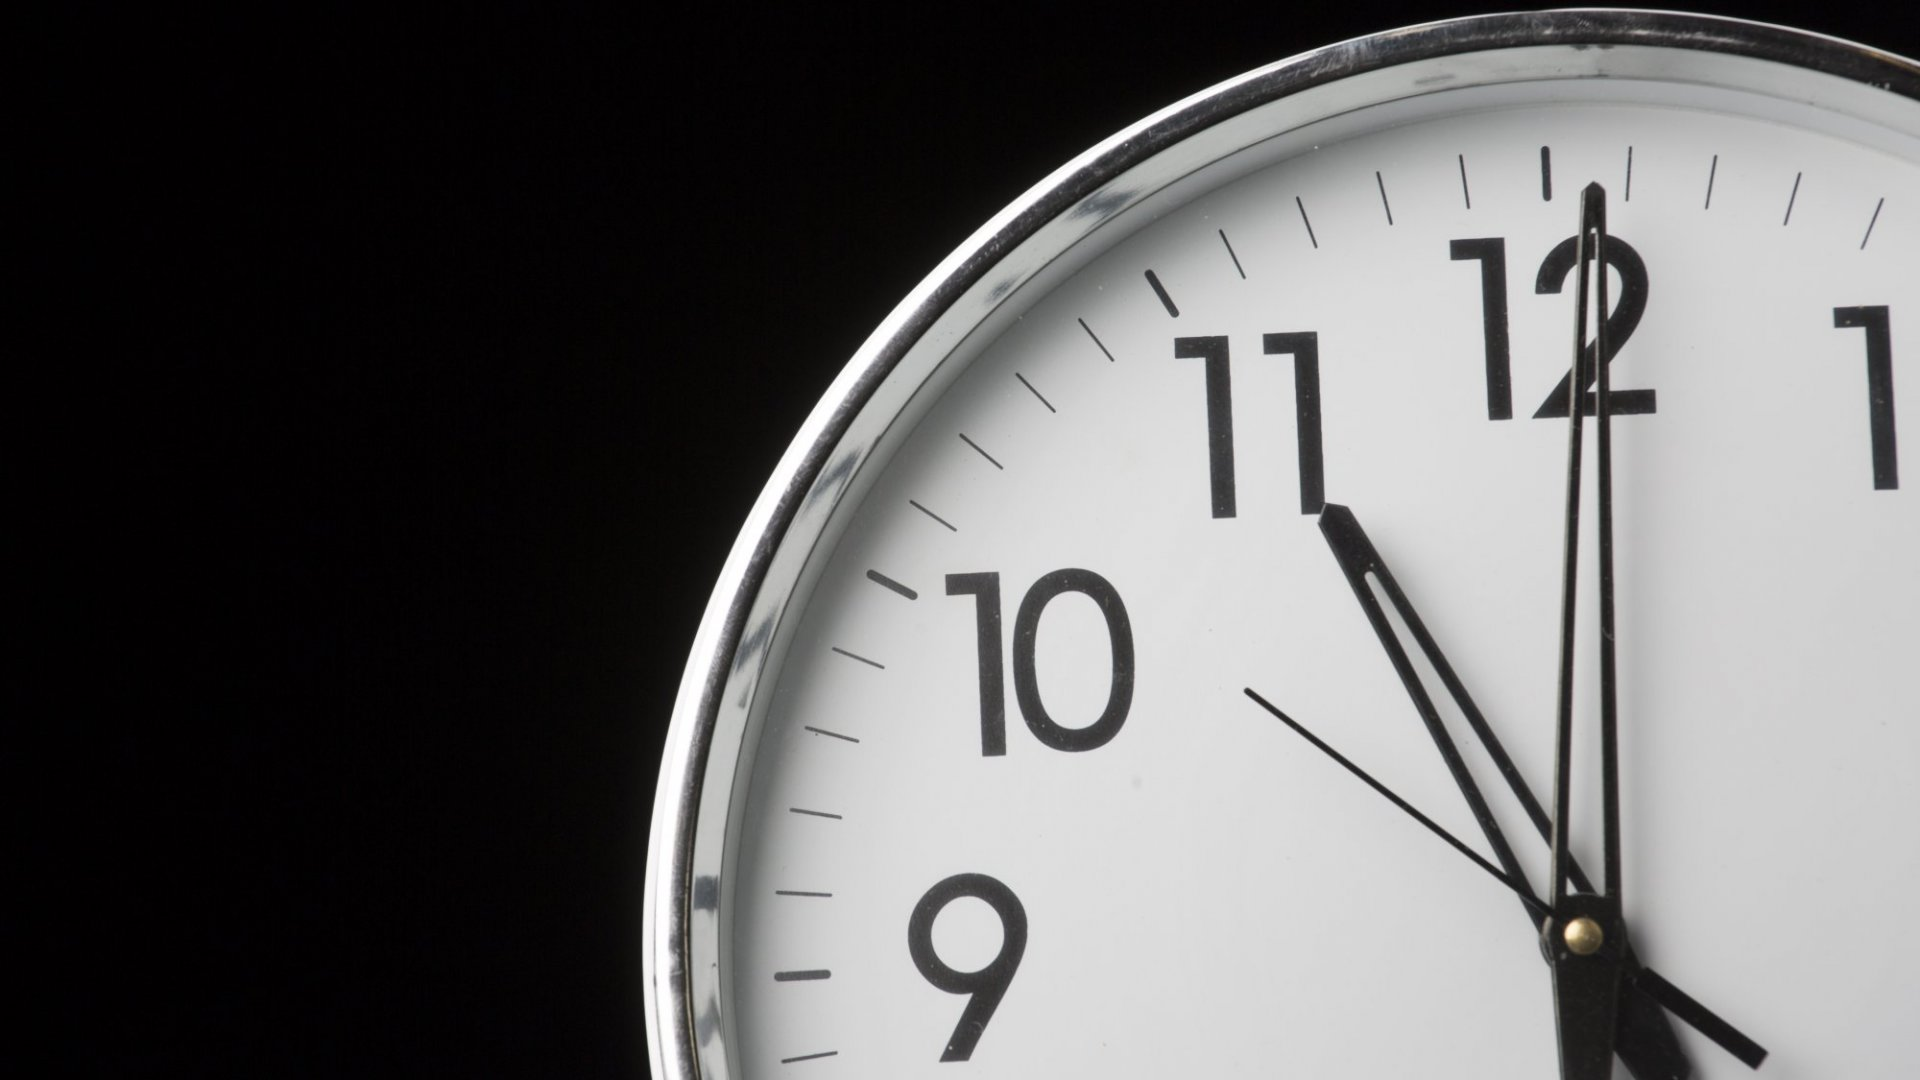 The 10-Second Secret to Faster Learning